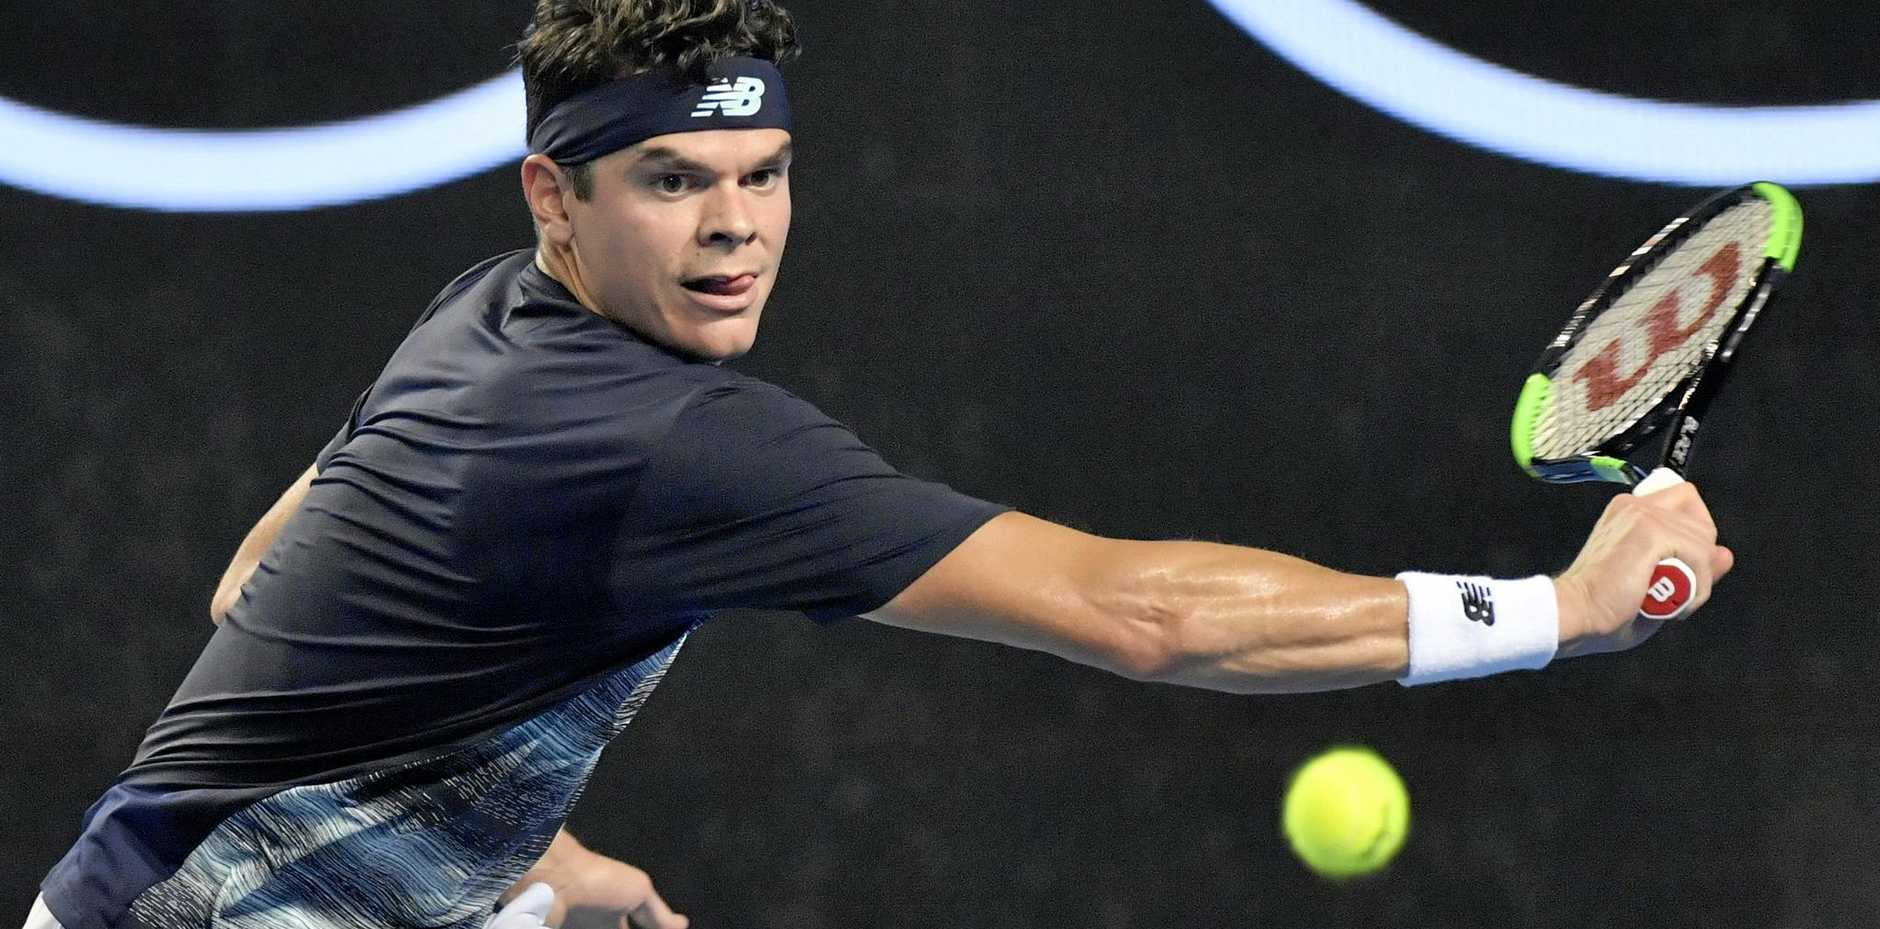 Milos Raonic of Canada faces off against Robert Bautista Agut of Spain during an Australian Open fourth-round match in Melbourne